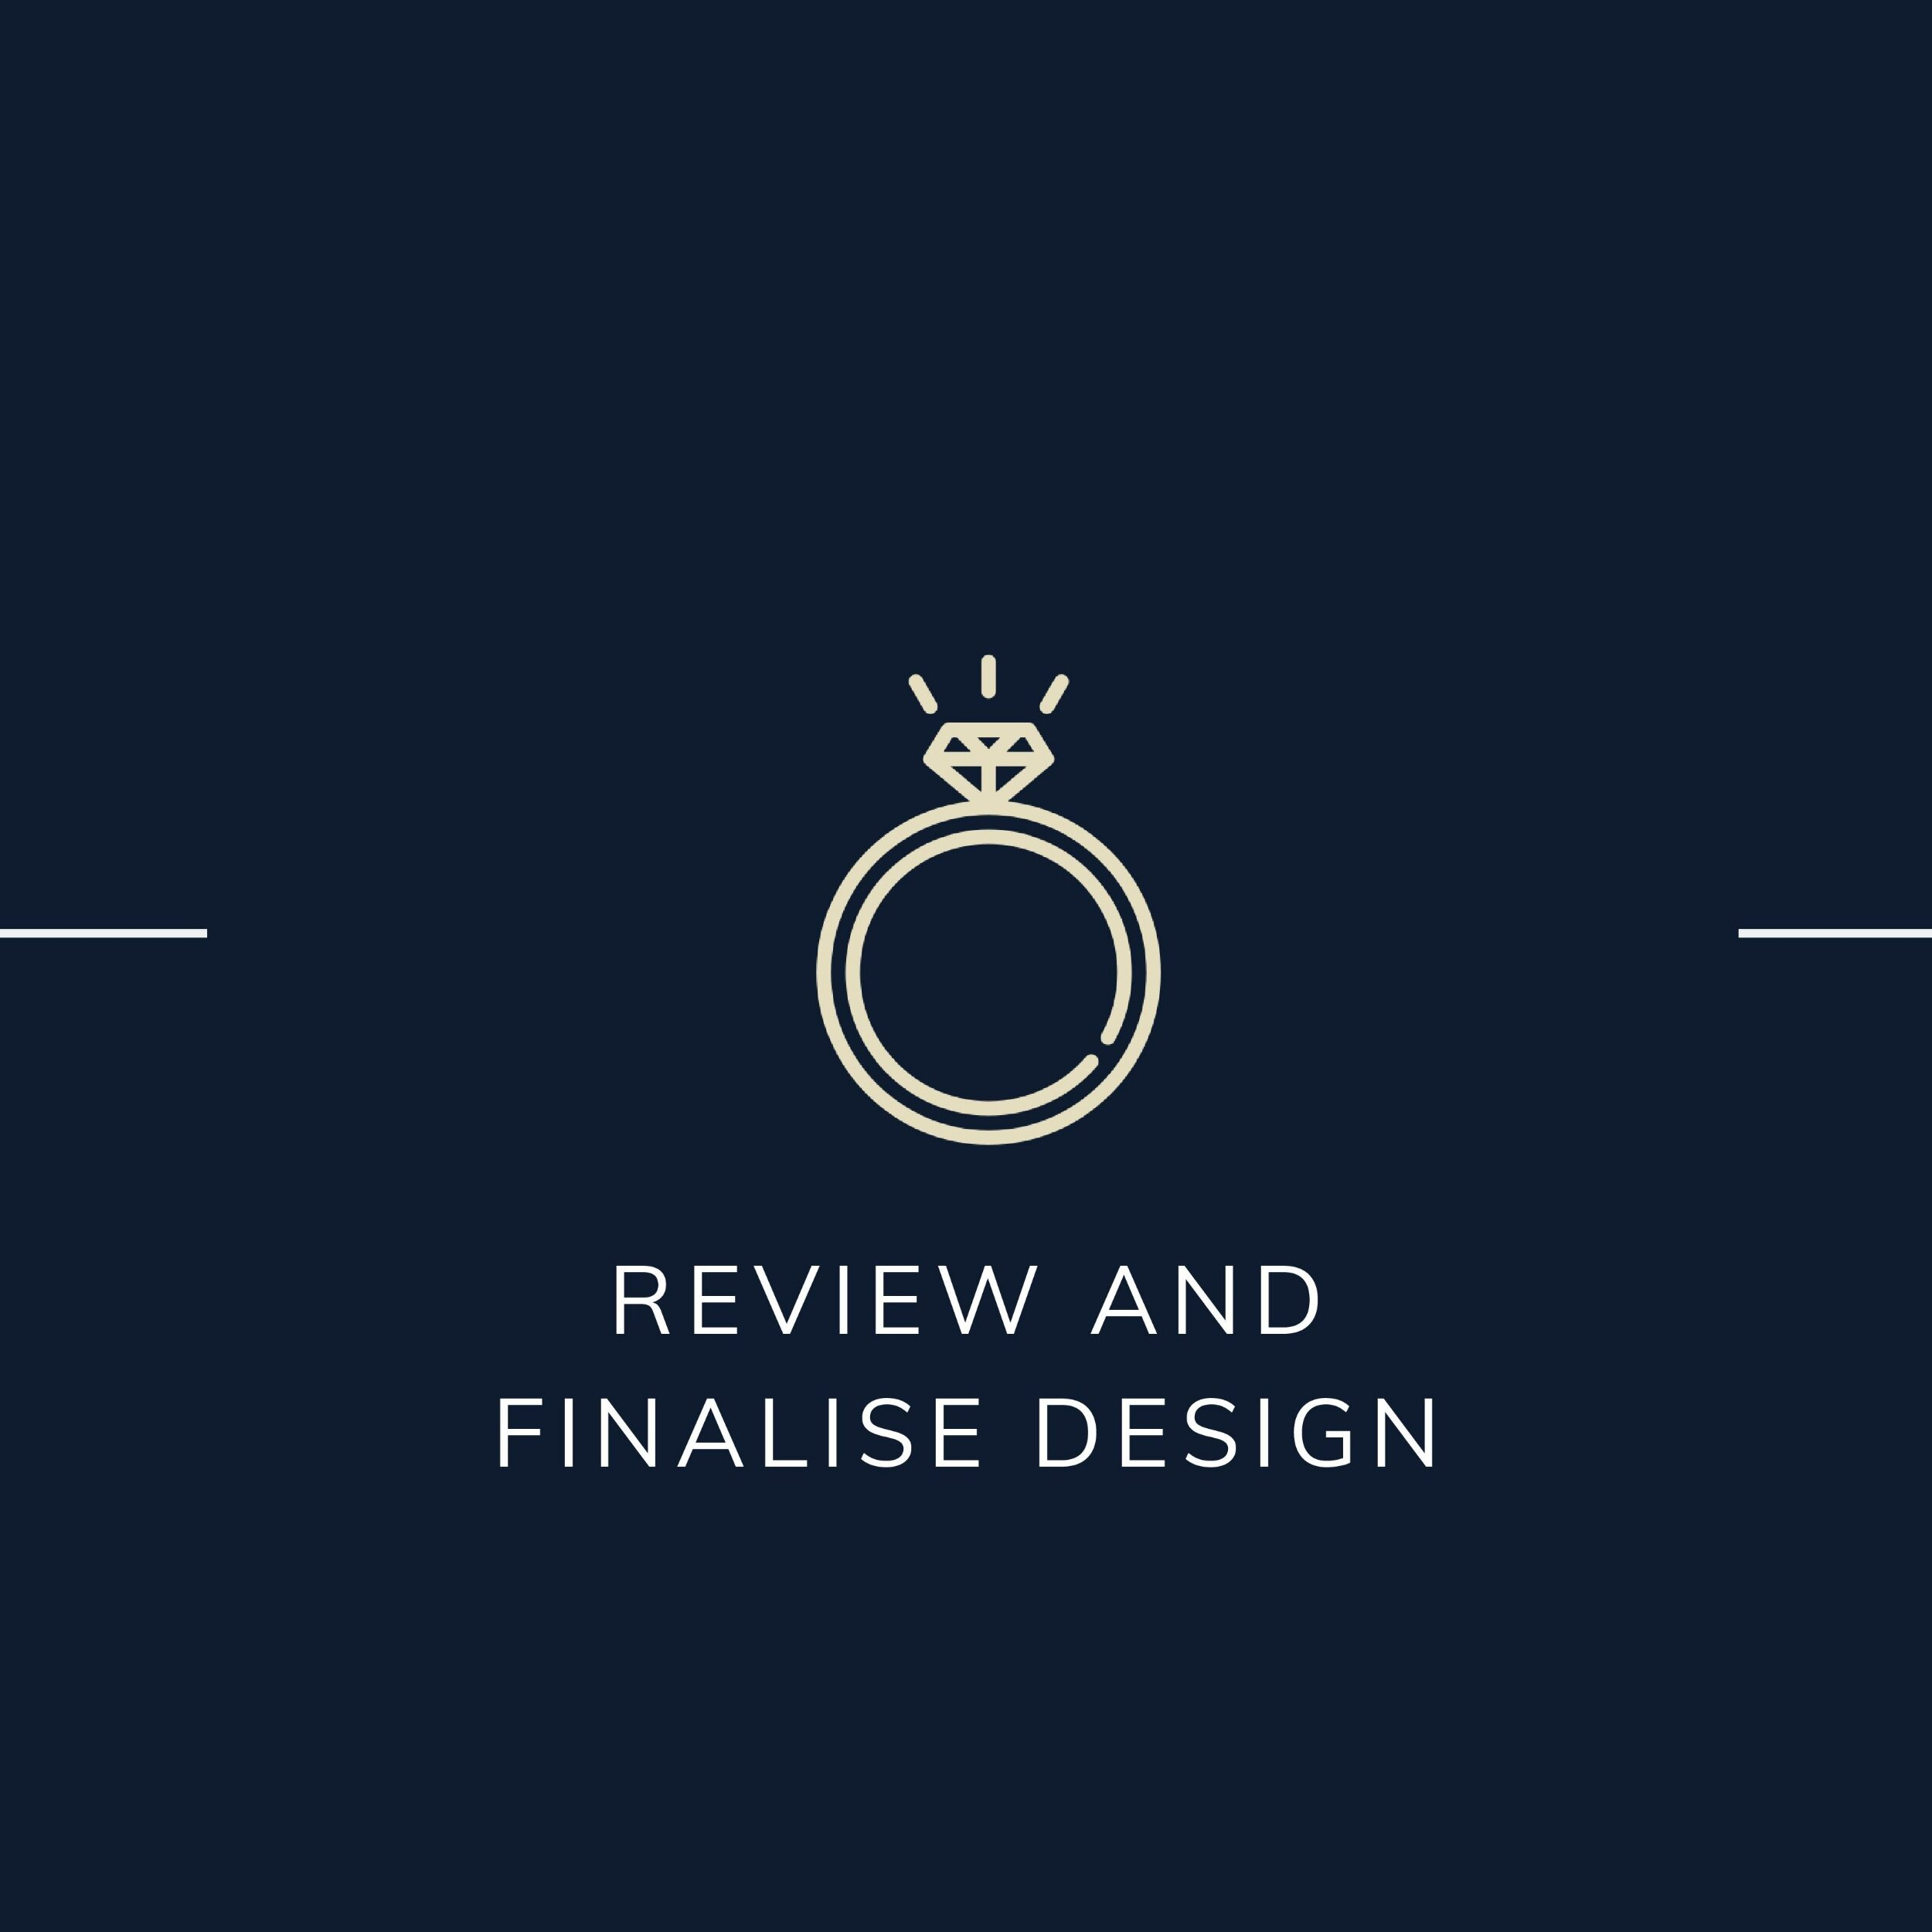 Review and finalise design